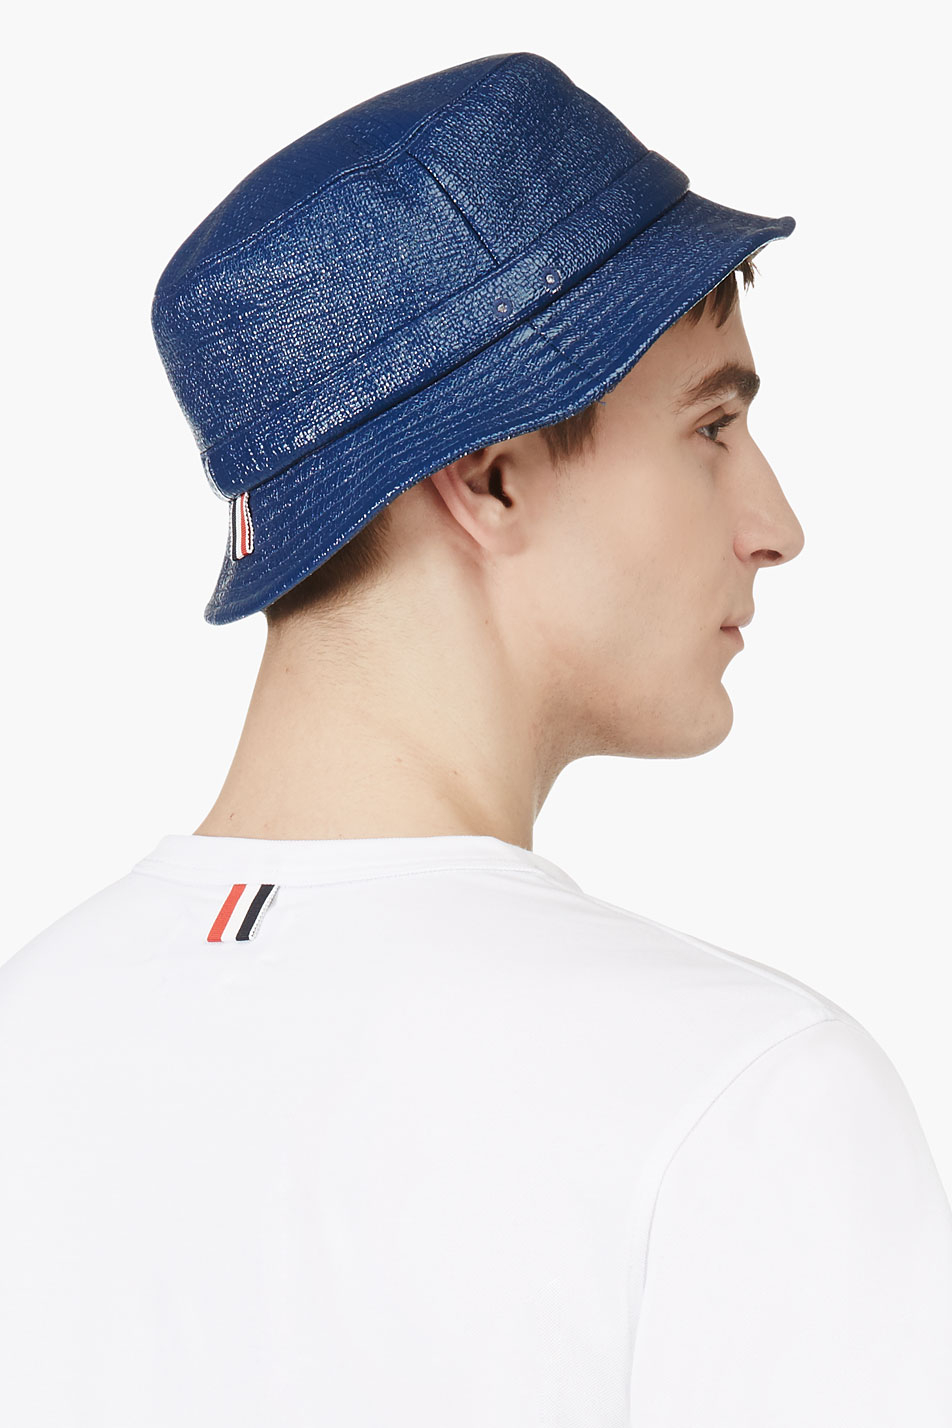 Lyst - Thom Browne Navy Waxed Cotton Tilley Hat in Blue for Men a03036905763